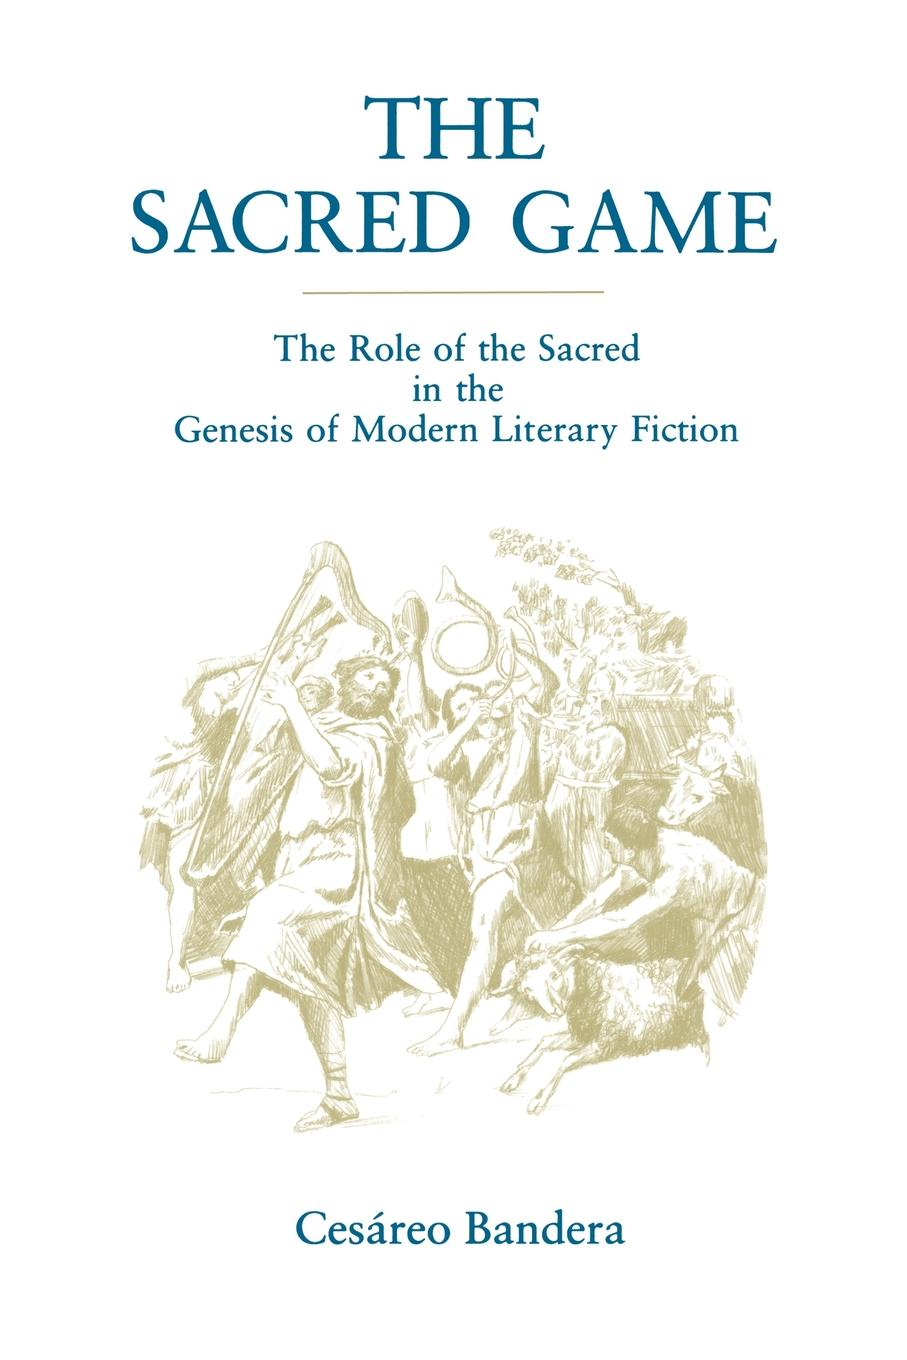 Cesareo Bandera The Sacred Game. The Role of the Sacred in the Genesis of Modern Literary Fiction коллектив авторов the modern collection of sacred music